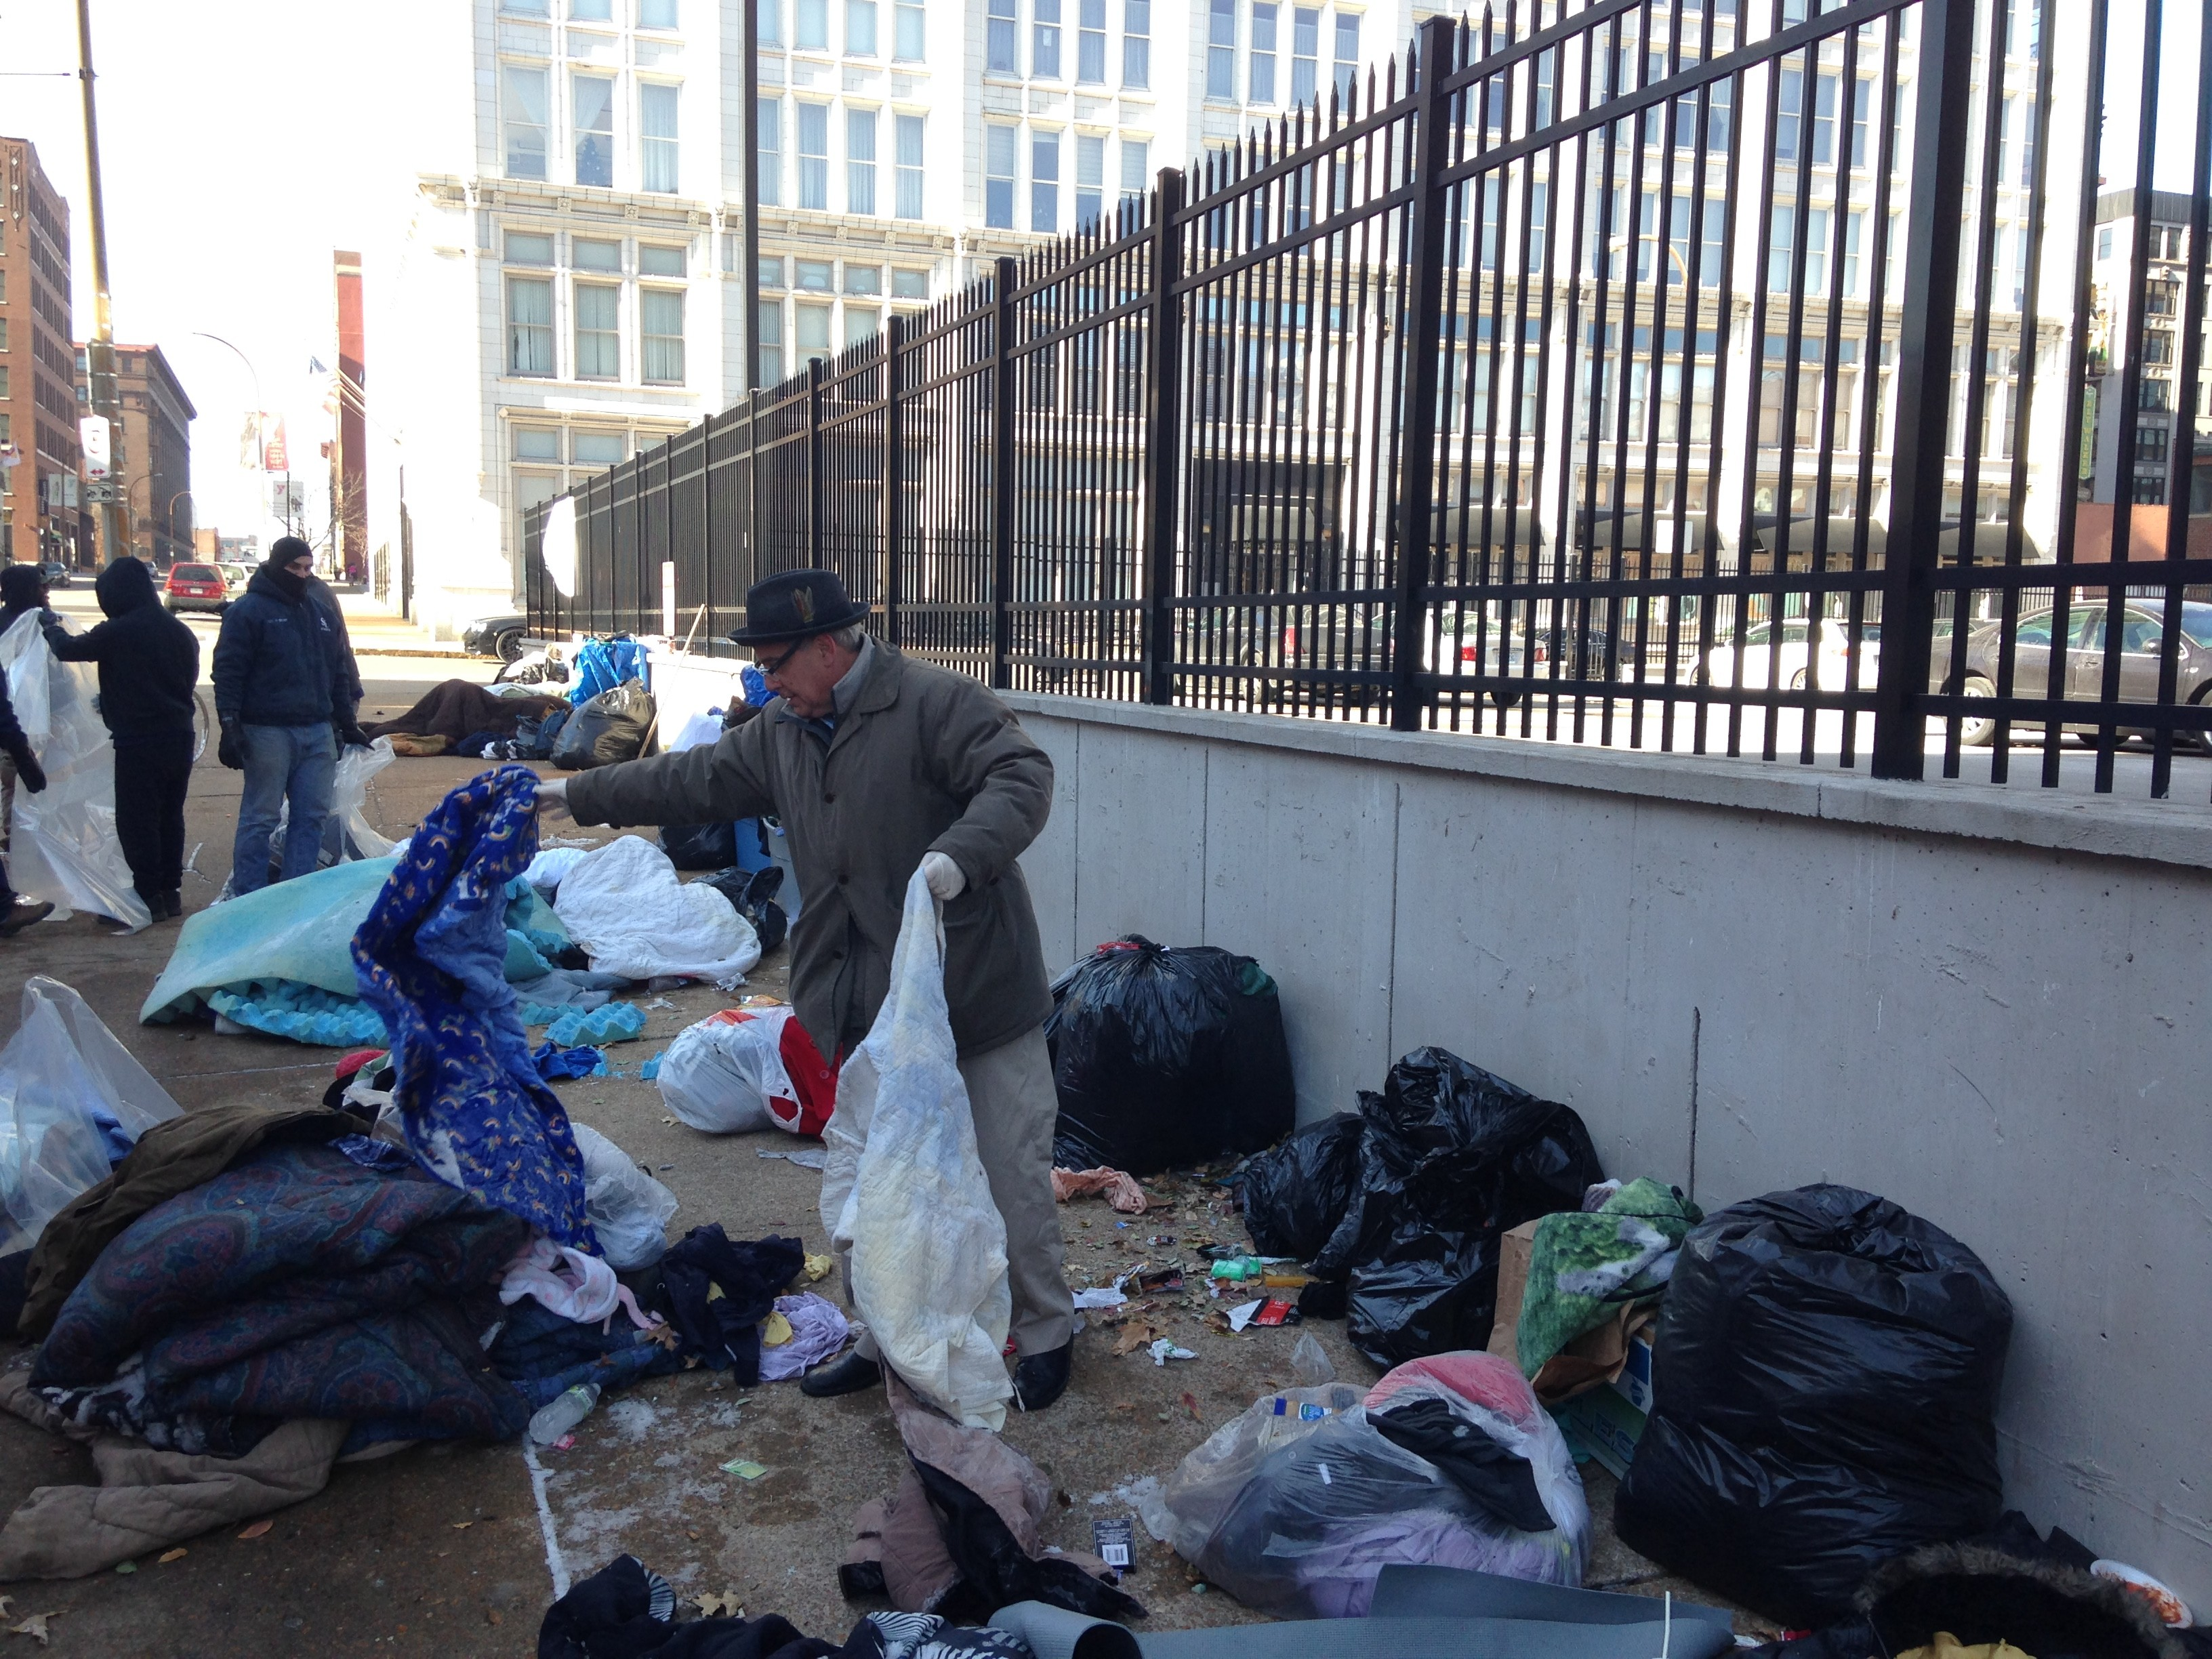 City Clears Blankets Clothes From Downtown St Louis